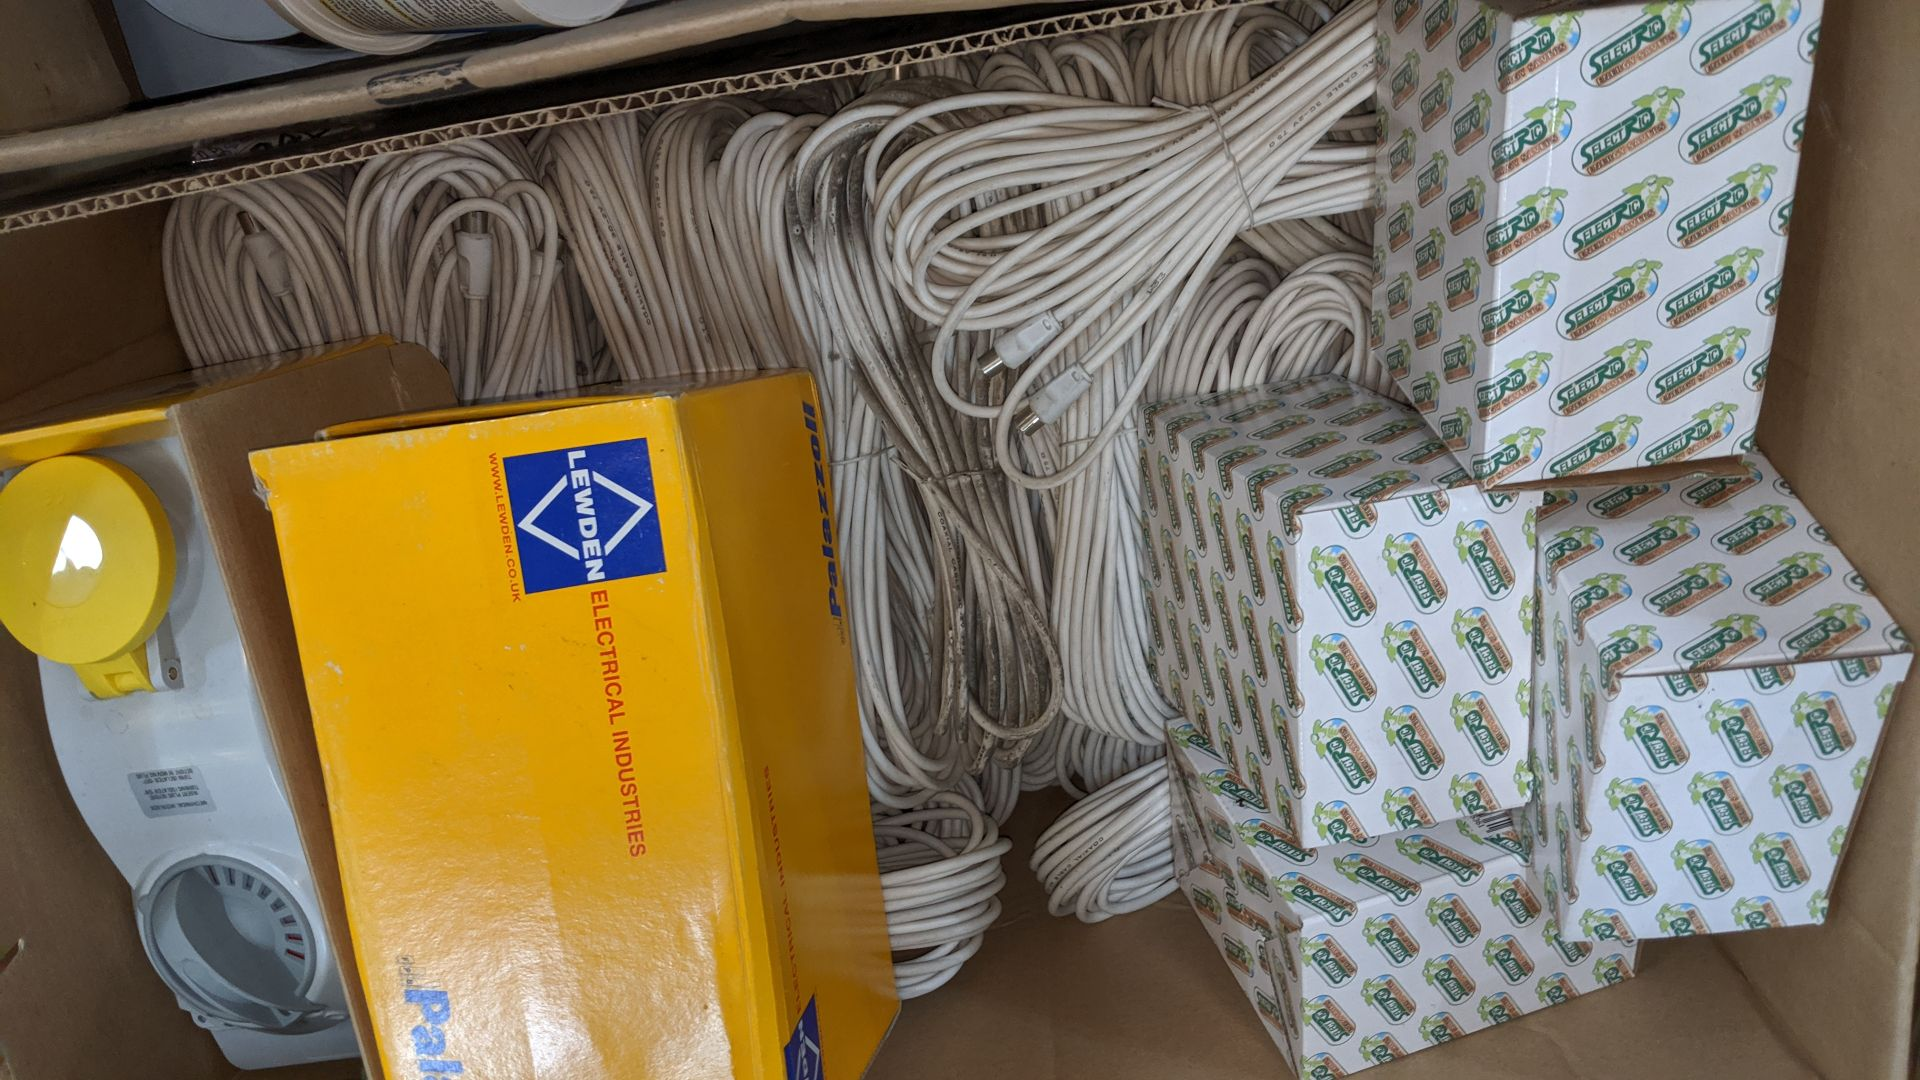 Lot 486 - Box of assorted sockets & cables. IMPORTANT: Please remember goods successfully bid upon must be